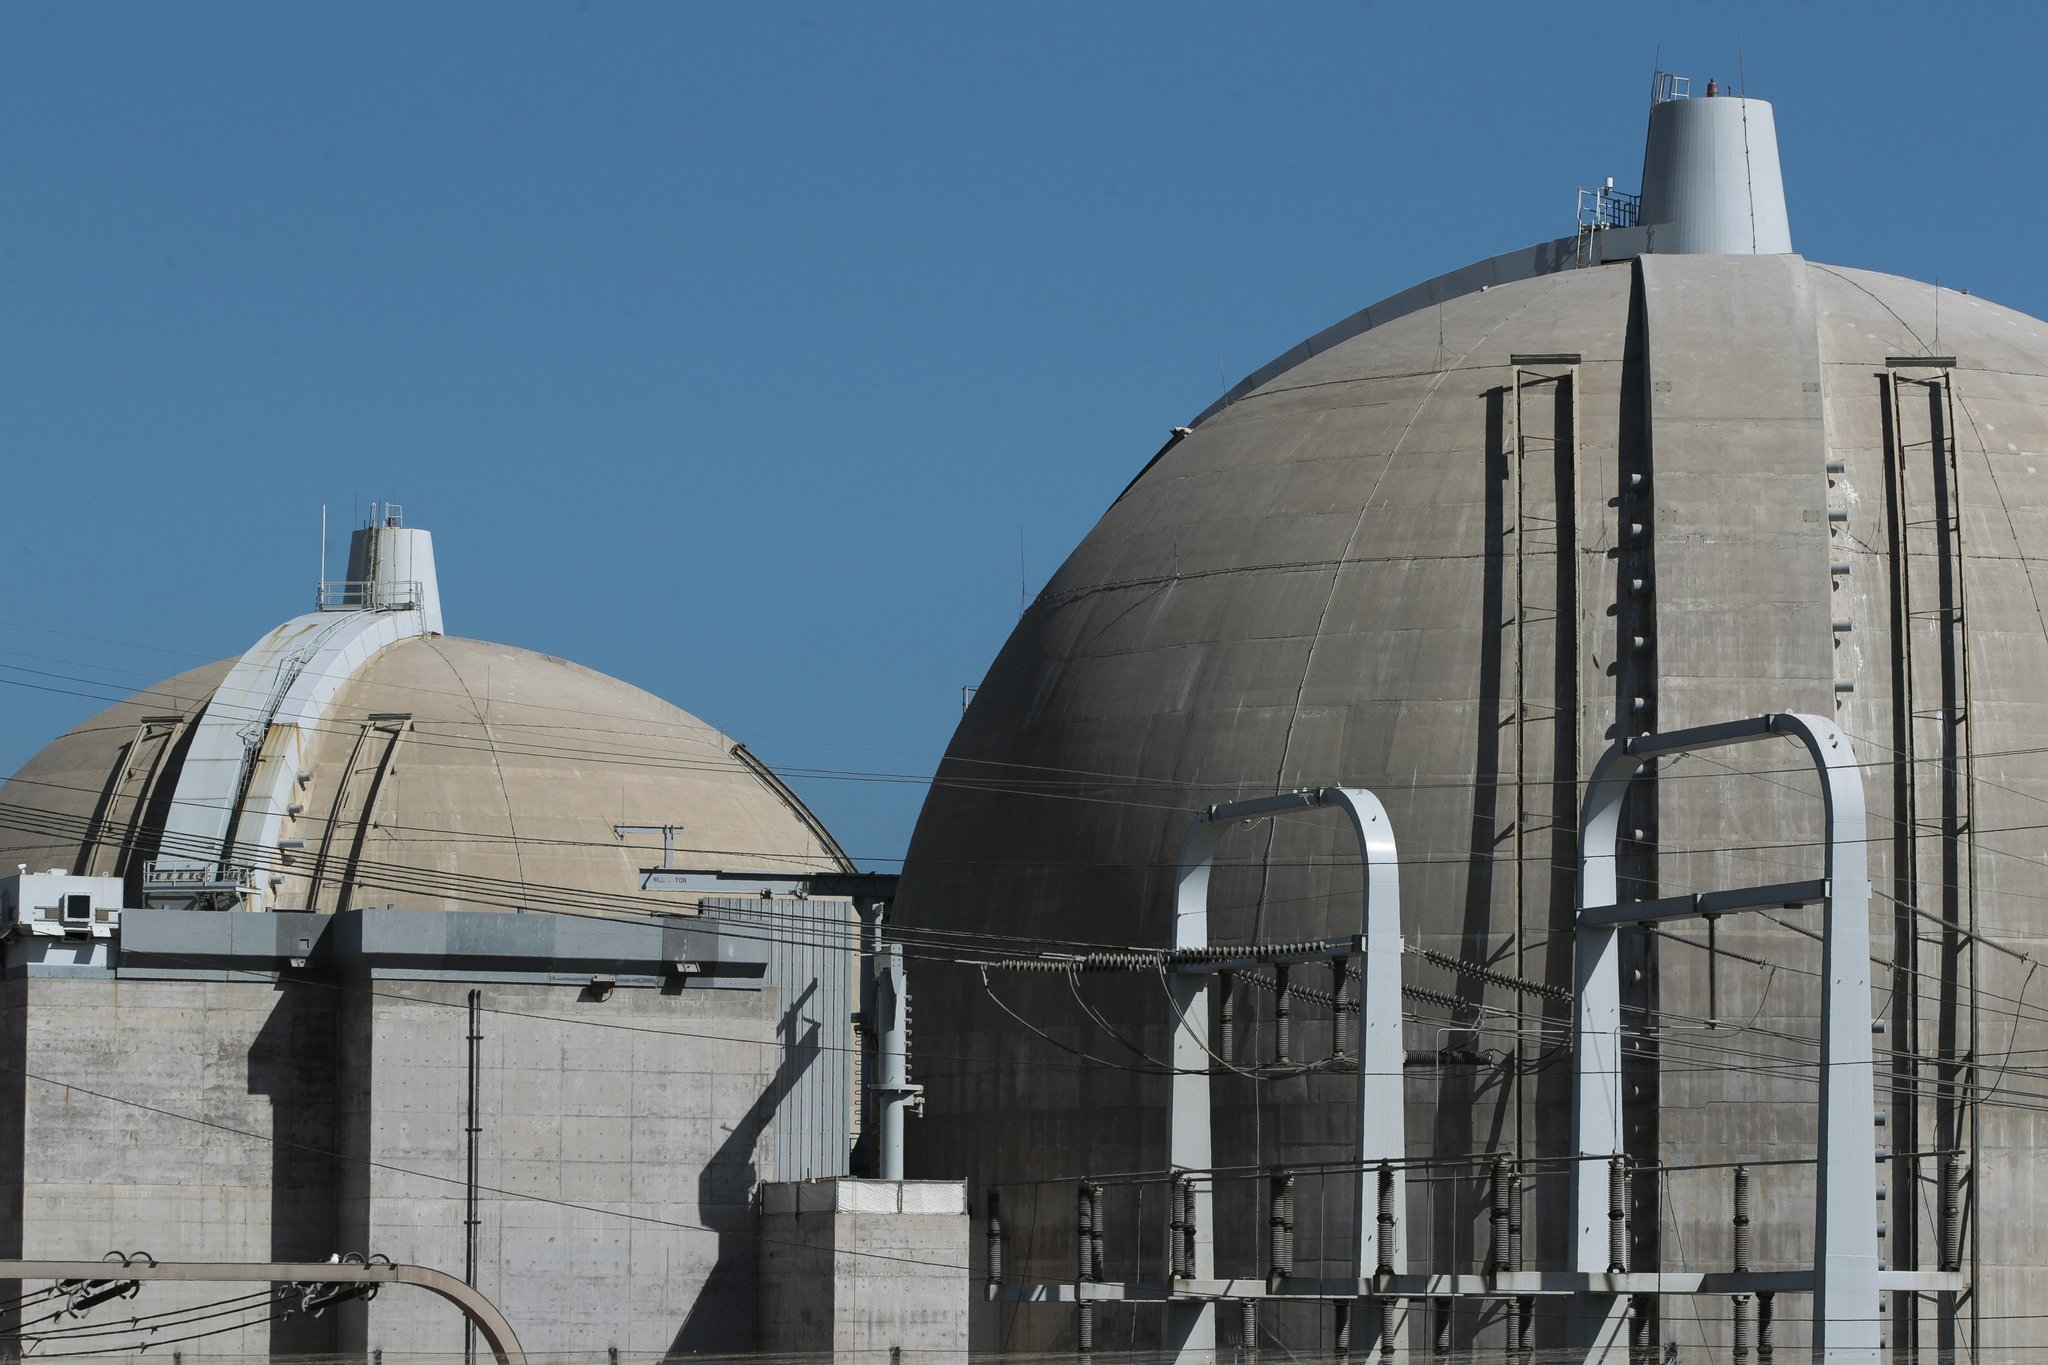 San ofre reactor was pushed too hard leak resulted report says